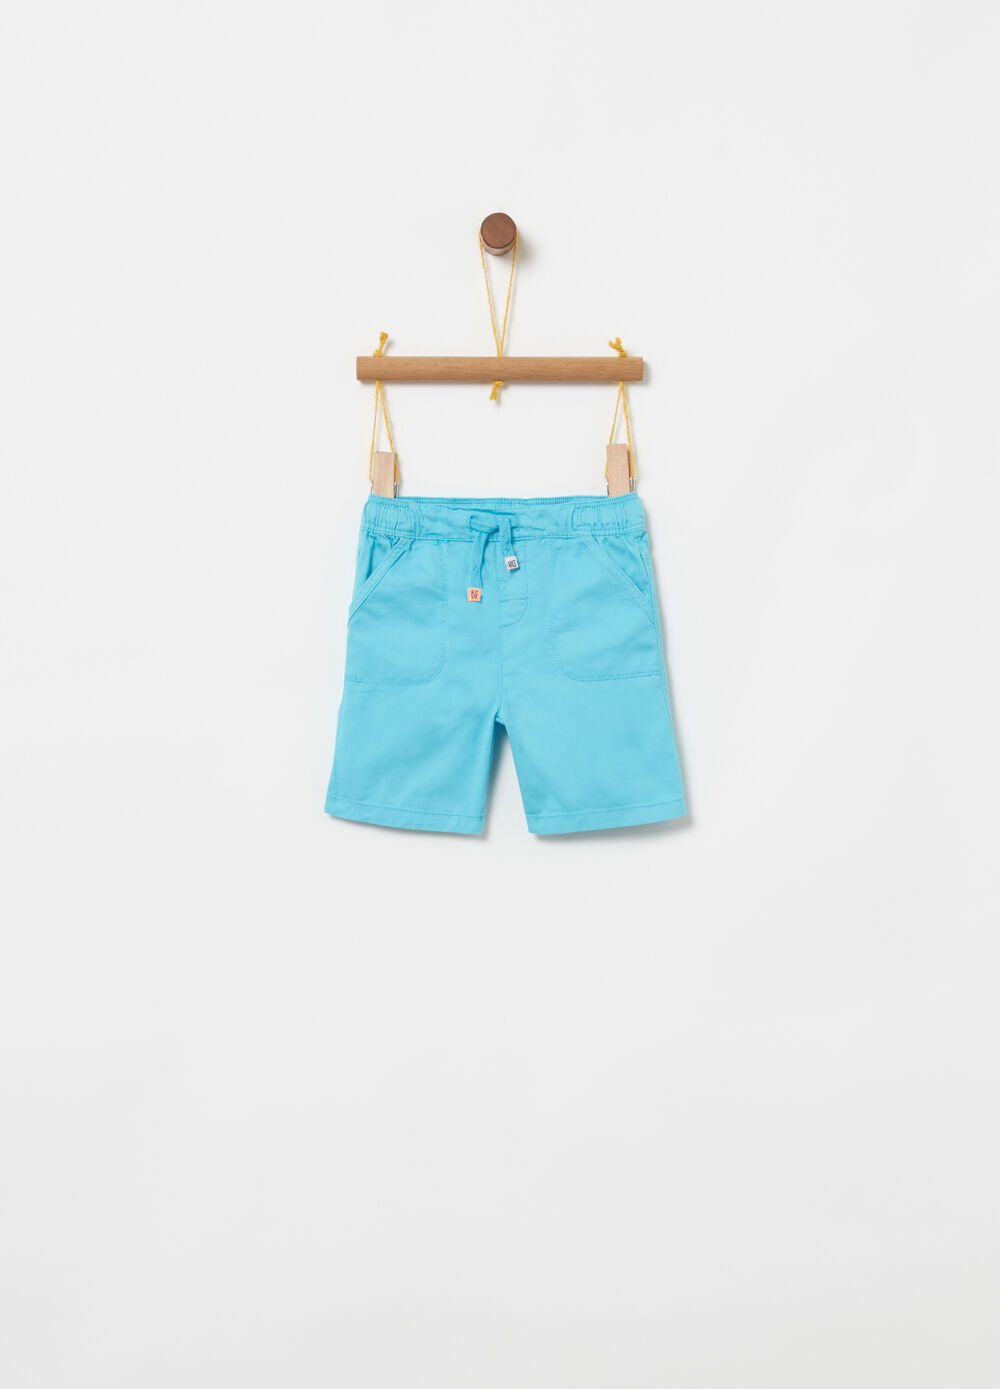 Bermuda shorts with welt pockets on the front